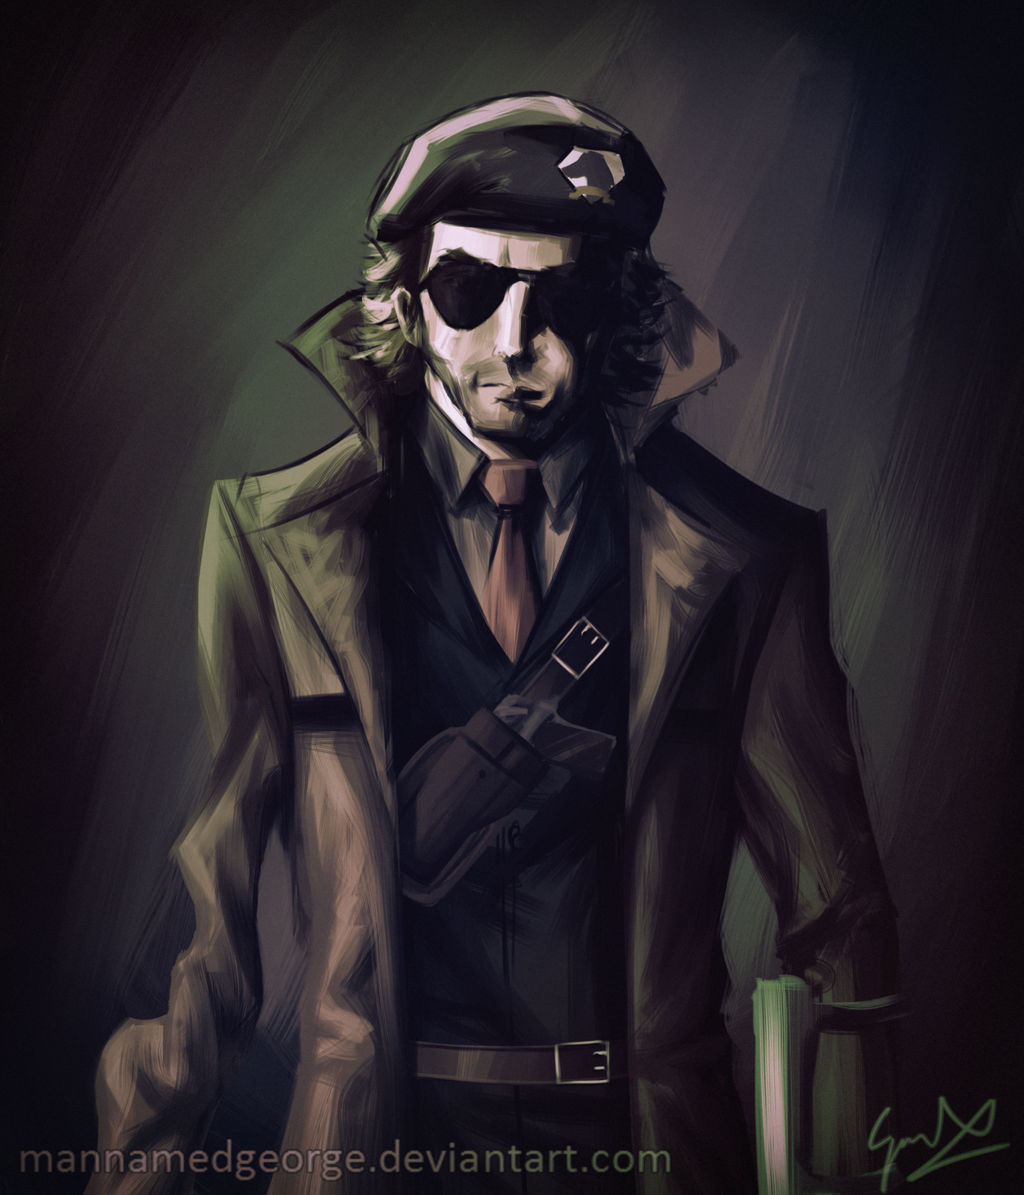 Sw3ooplpcg9ykm See more of kazuhira miller on facebook. https www deviantart com captainbombastic art kazuhira miller metal gear solid v 591629572